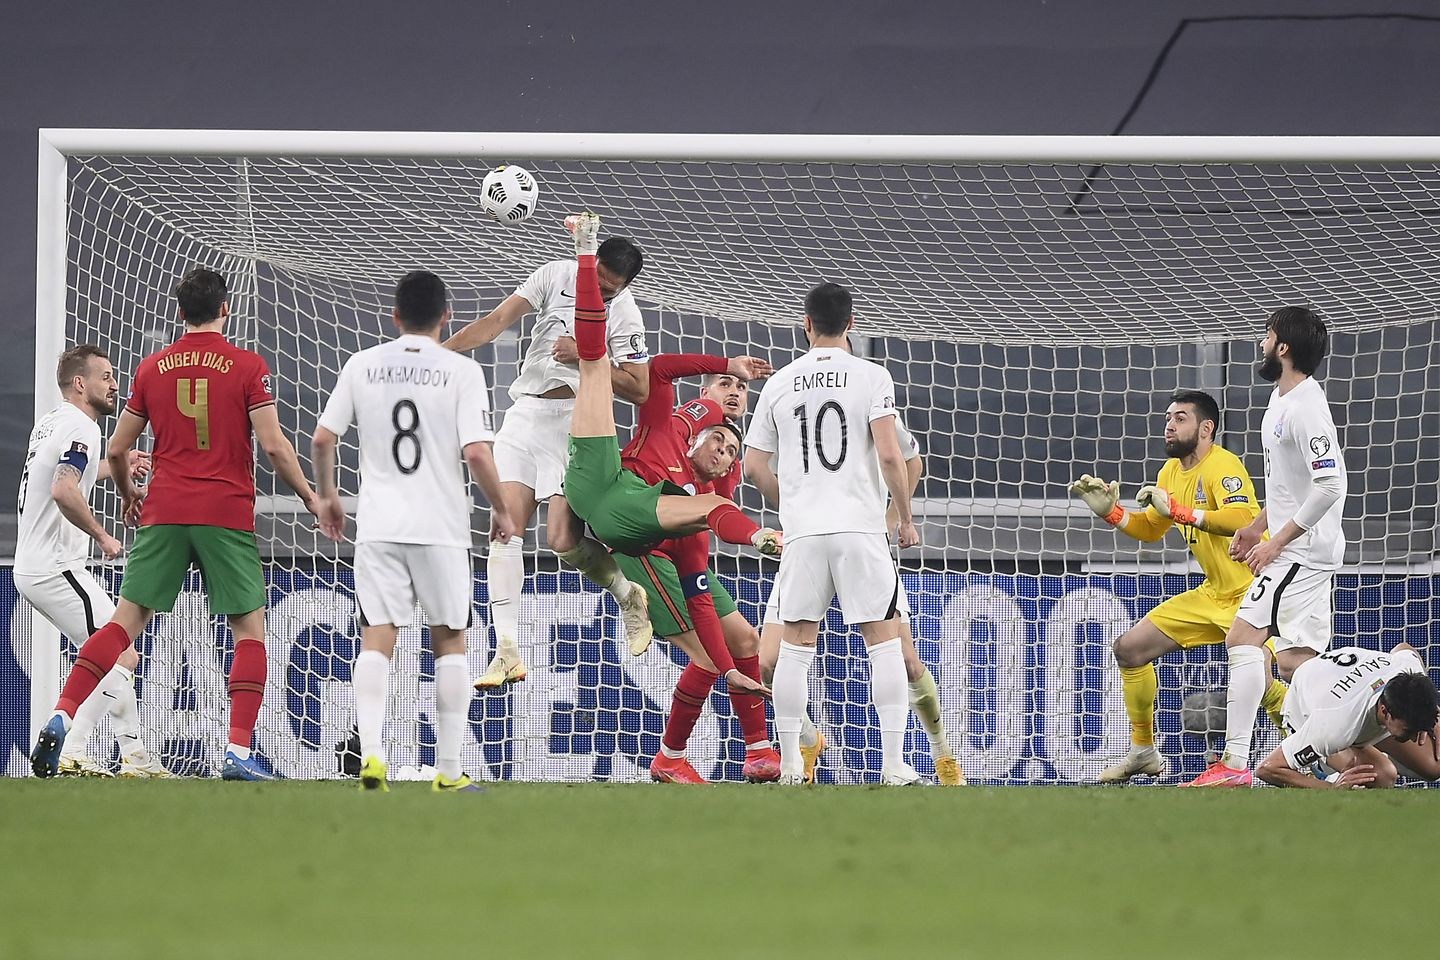 Ronaldo scoreless as Portugal tops Azerbaijan 1-0 in Group A | Soccer-Addict